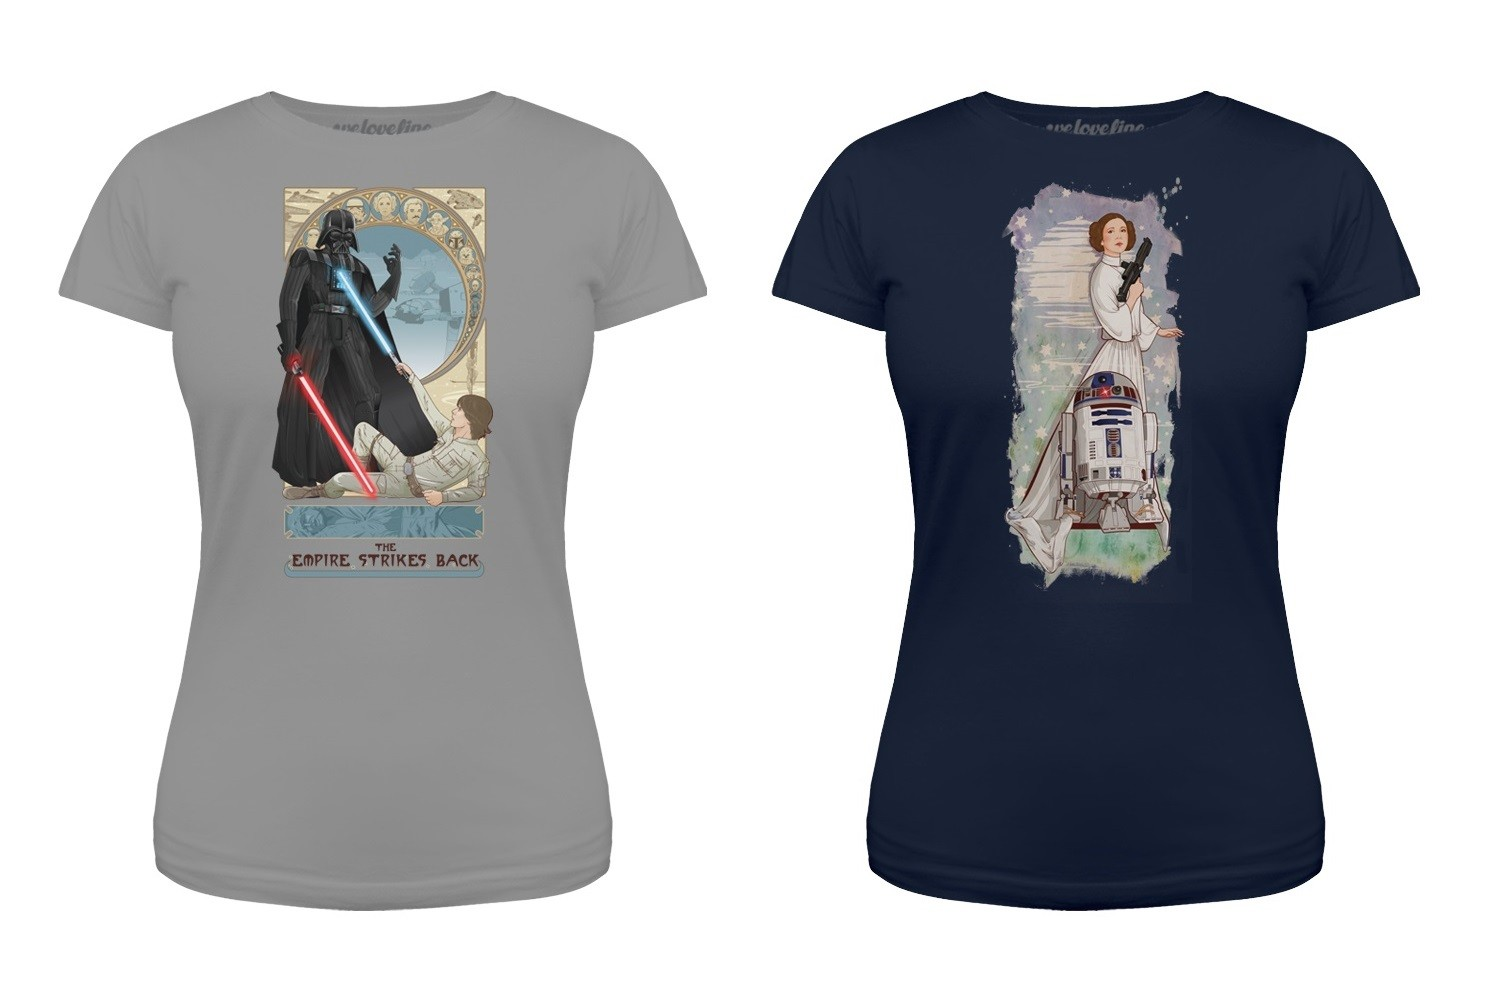 New Star Wars tees at We Love Fine